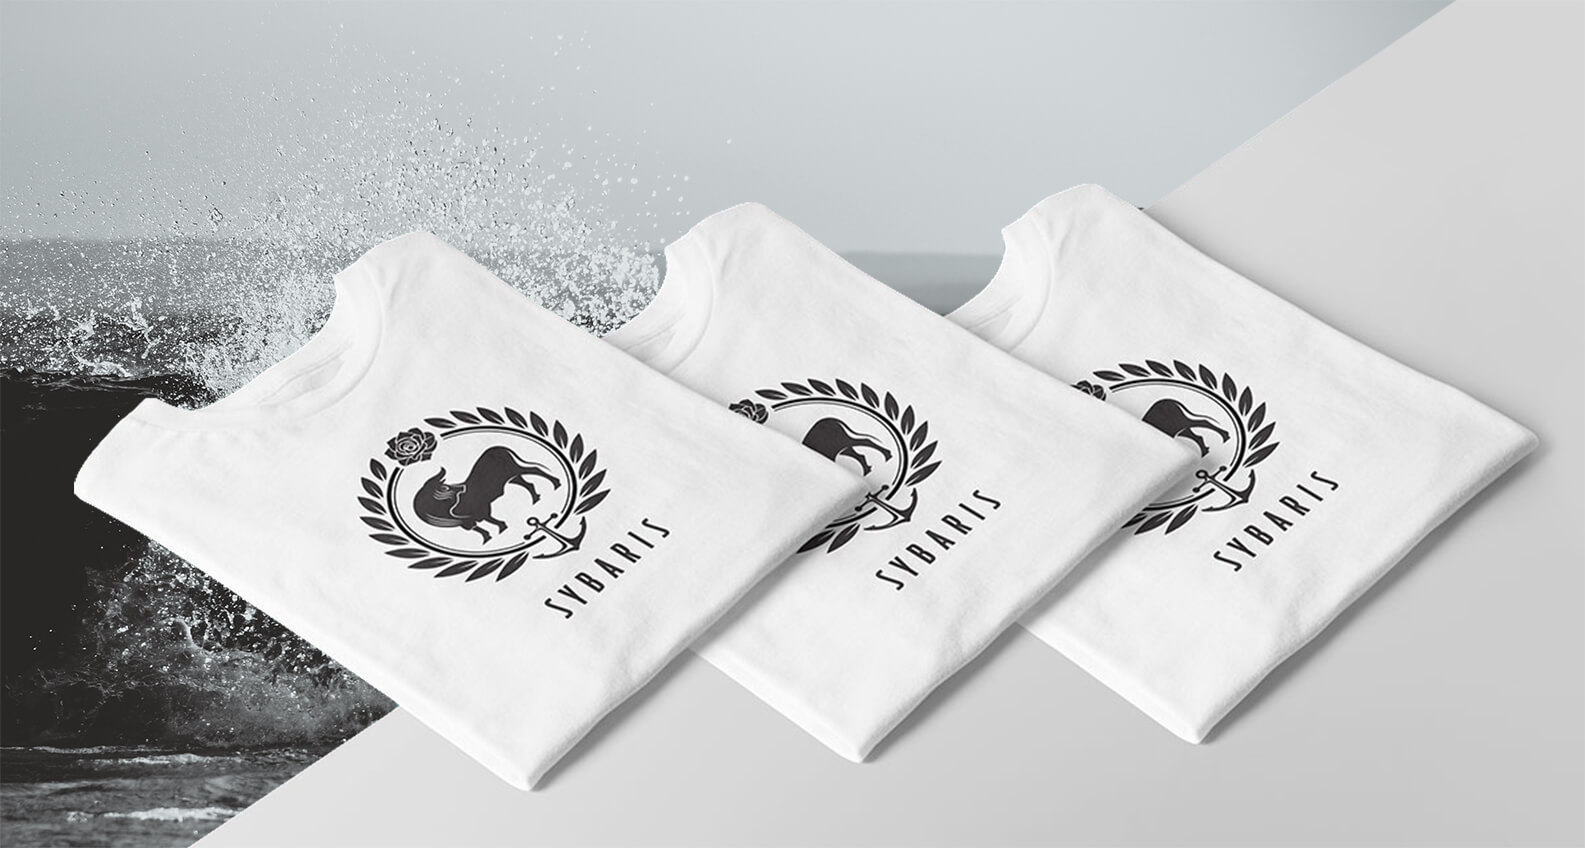 Sybaris logo and tshirt design by Jacober Creative